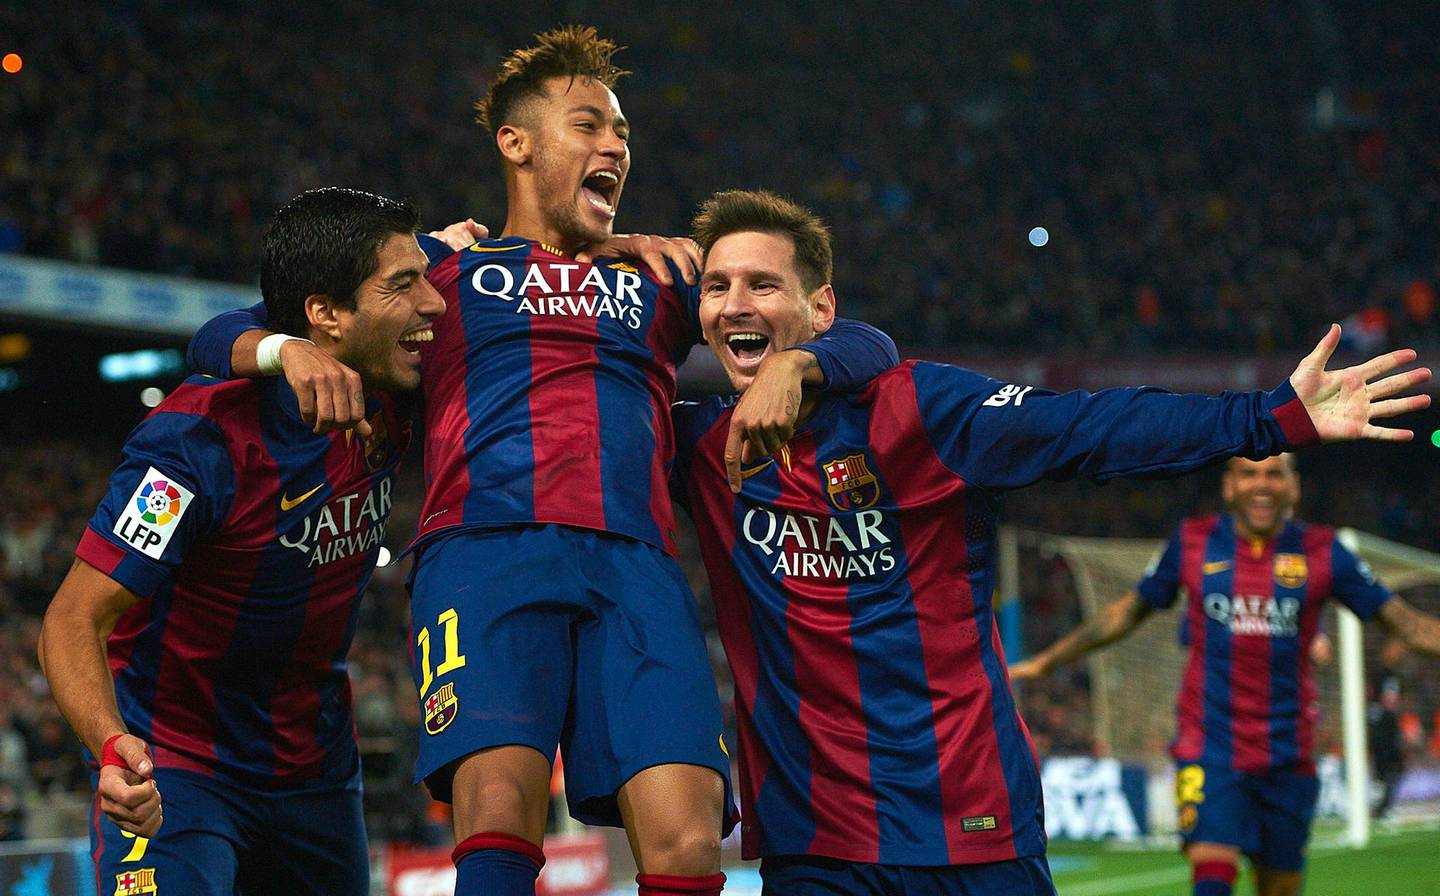 FILE - In this Sunday, Jan. 11, 2015 file photo, FC Barcelona's Lionel Messi, right, Neymar, center, and Luis Suarez, celebrate after scoring against Atletico Madrid during a Spanish La Liga soccer match at the Camp Nou stadium in Barcelona, Spain. Barcelona said, Wednesday, Aug. 2, 2017, Neymar's 222 million euro ($262 million) release clause must be paid in full if the Brazil striker wants to leave. (AP Photo/Siu Wu, File)